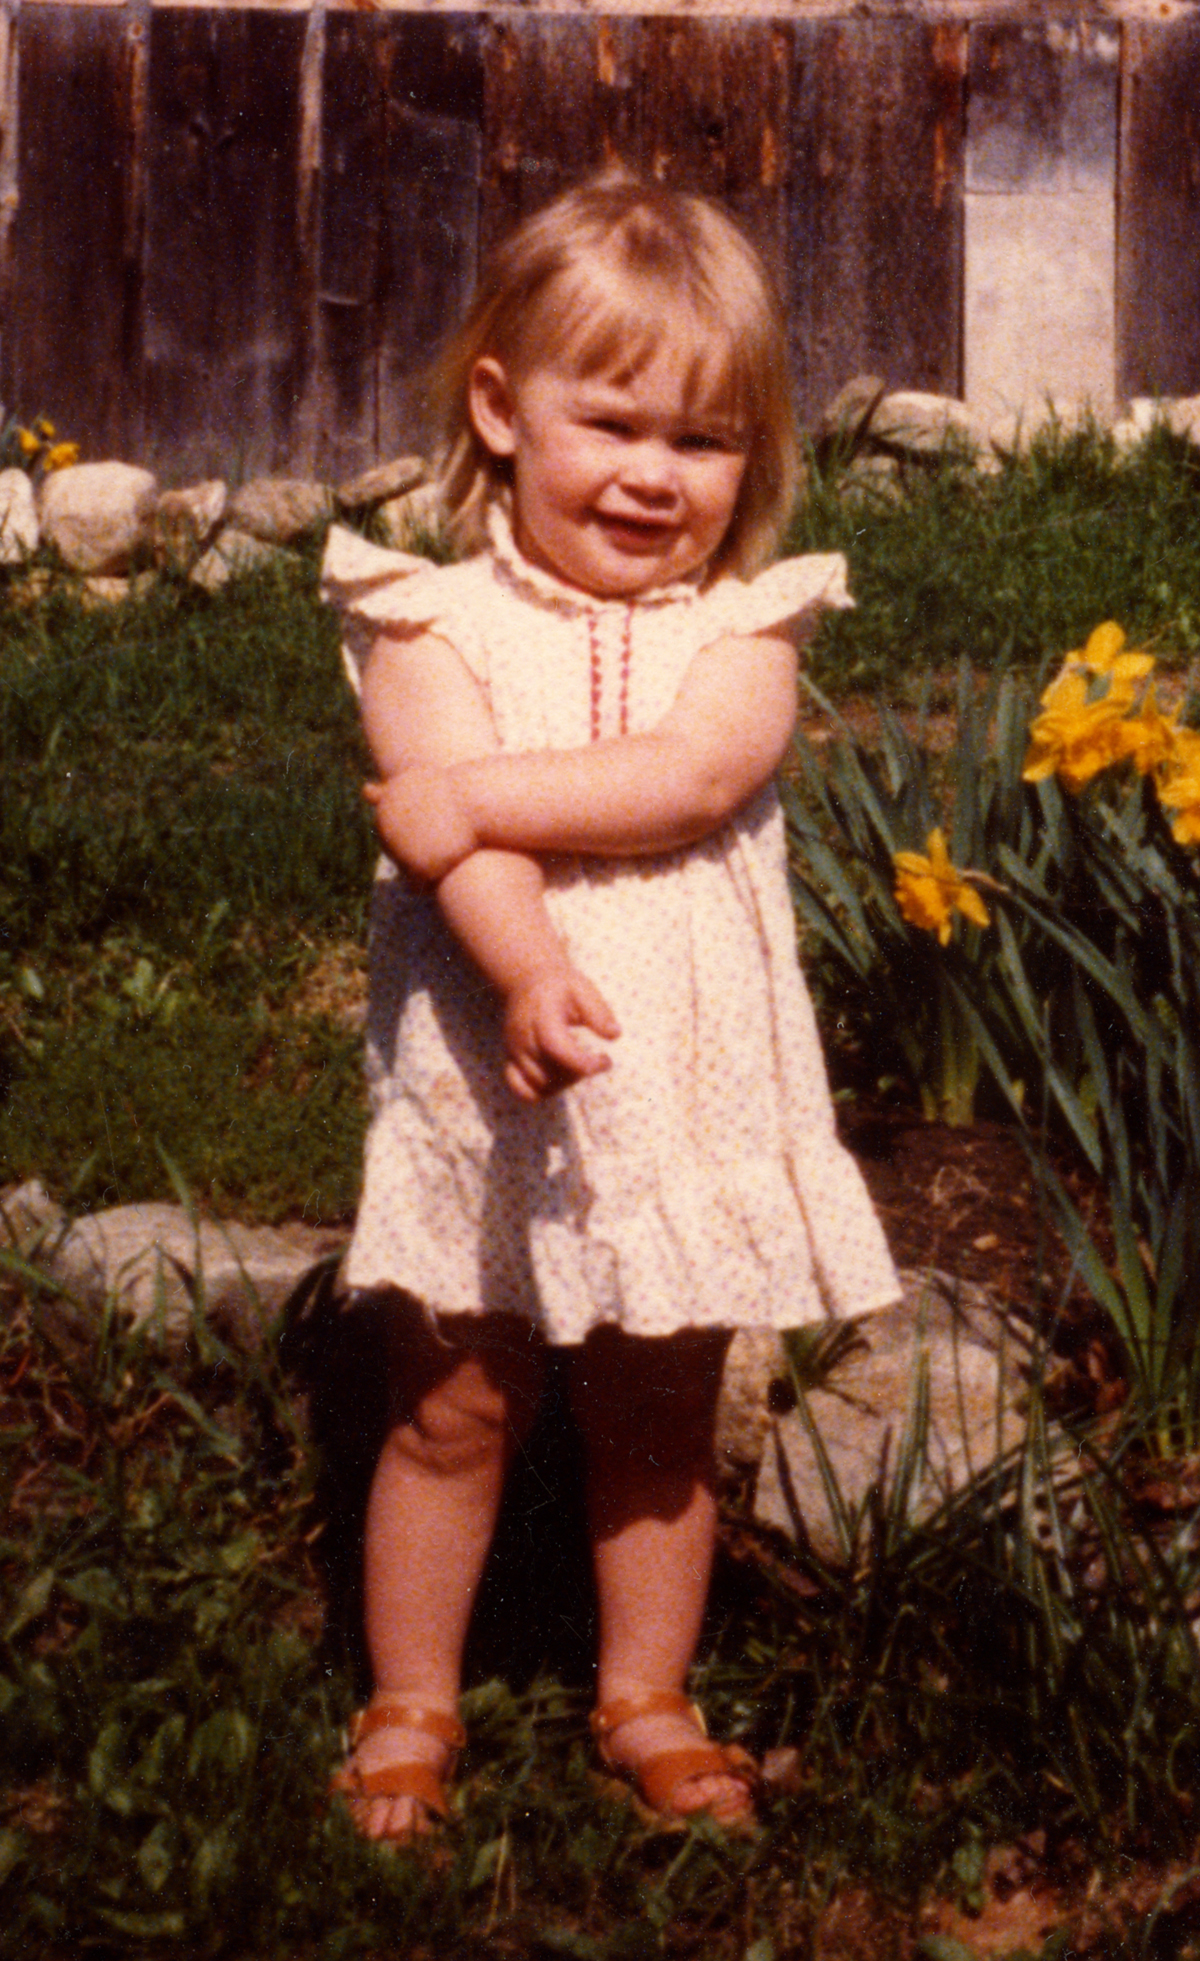 The pretty dress I would not take off as a toddler